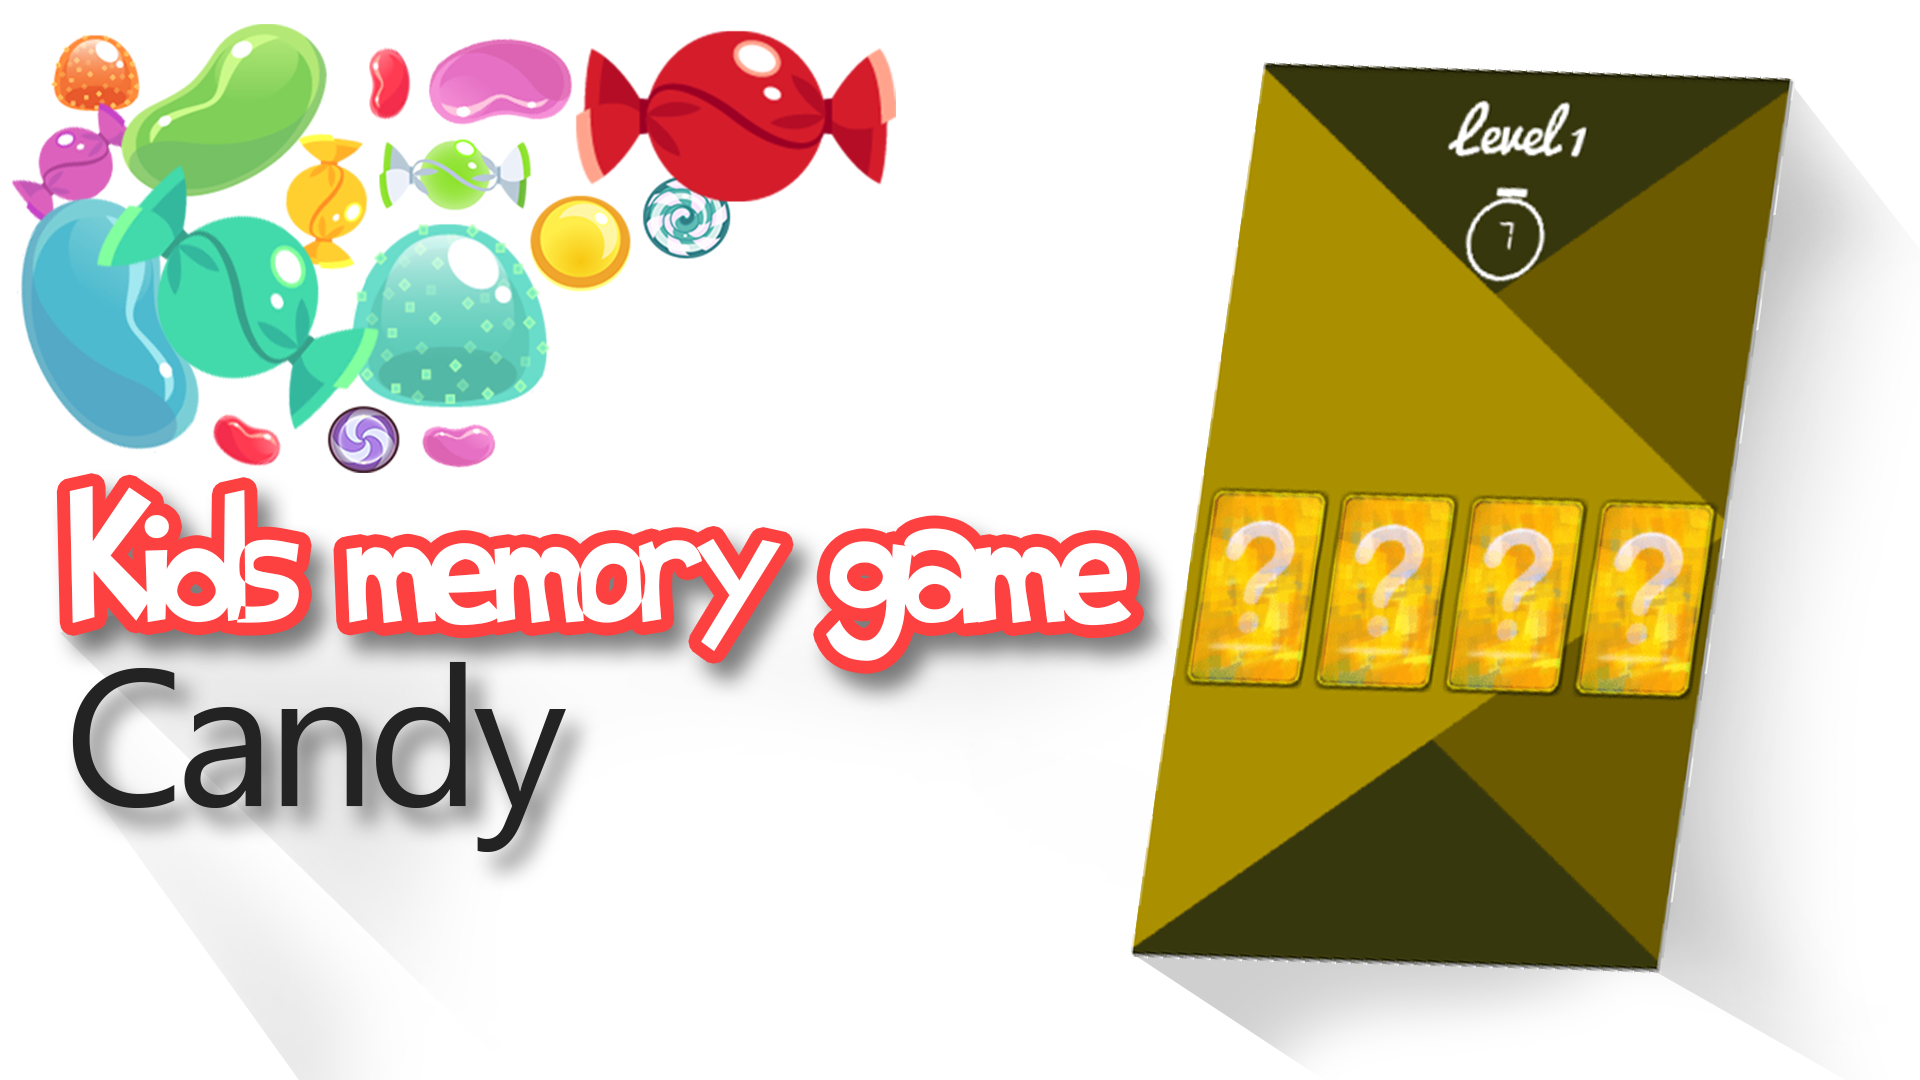 Kids memory game Candy